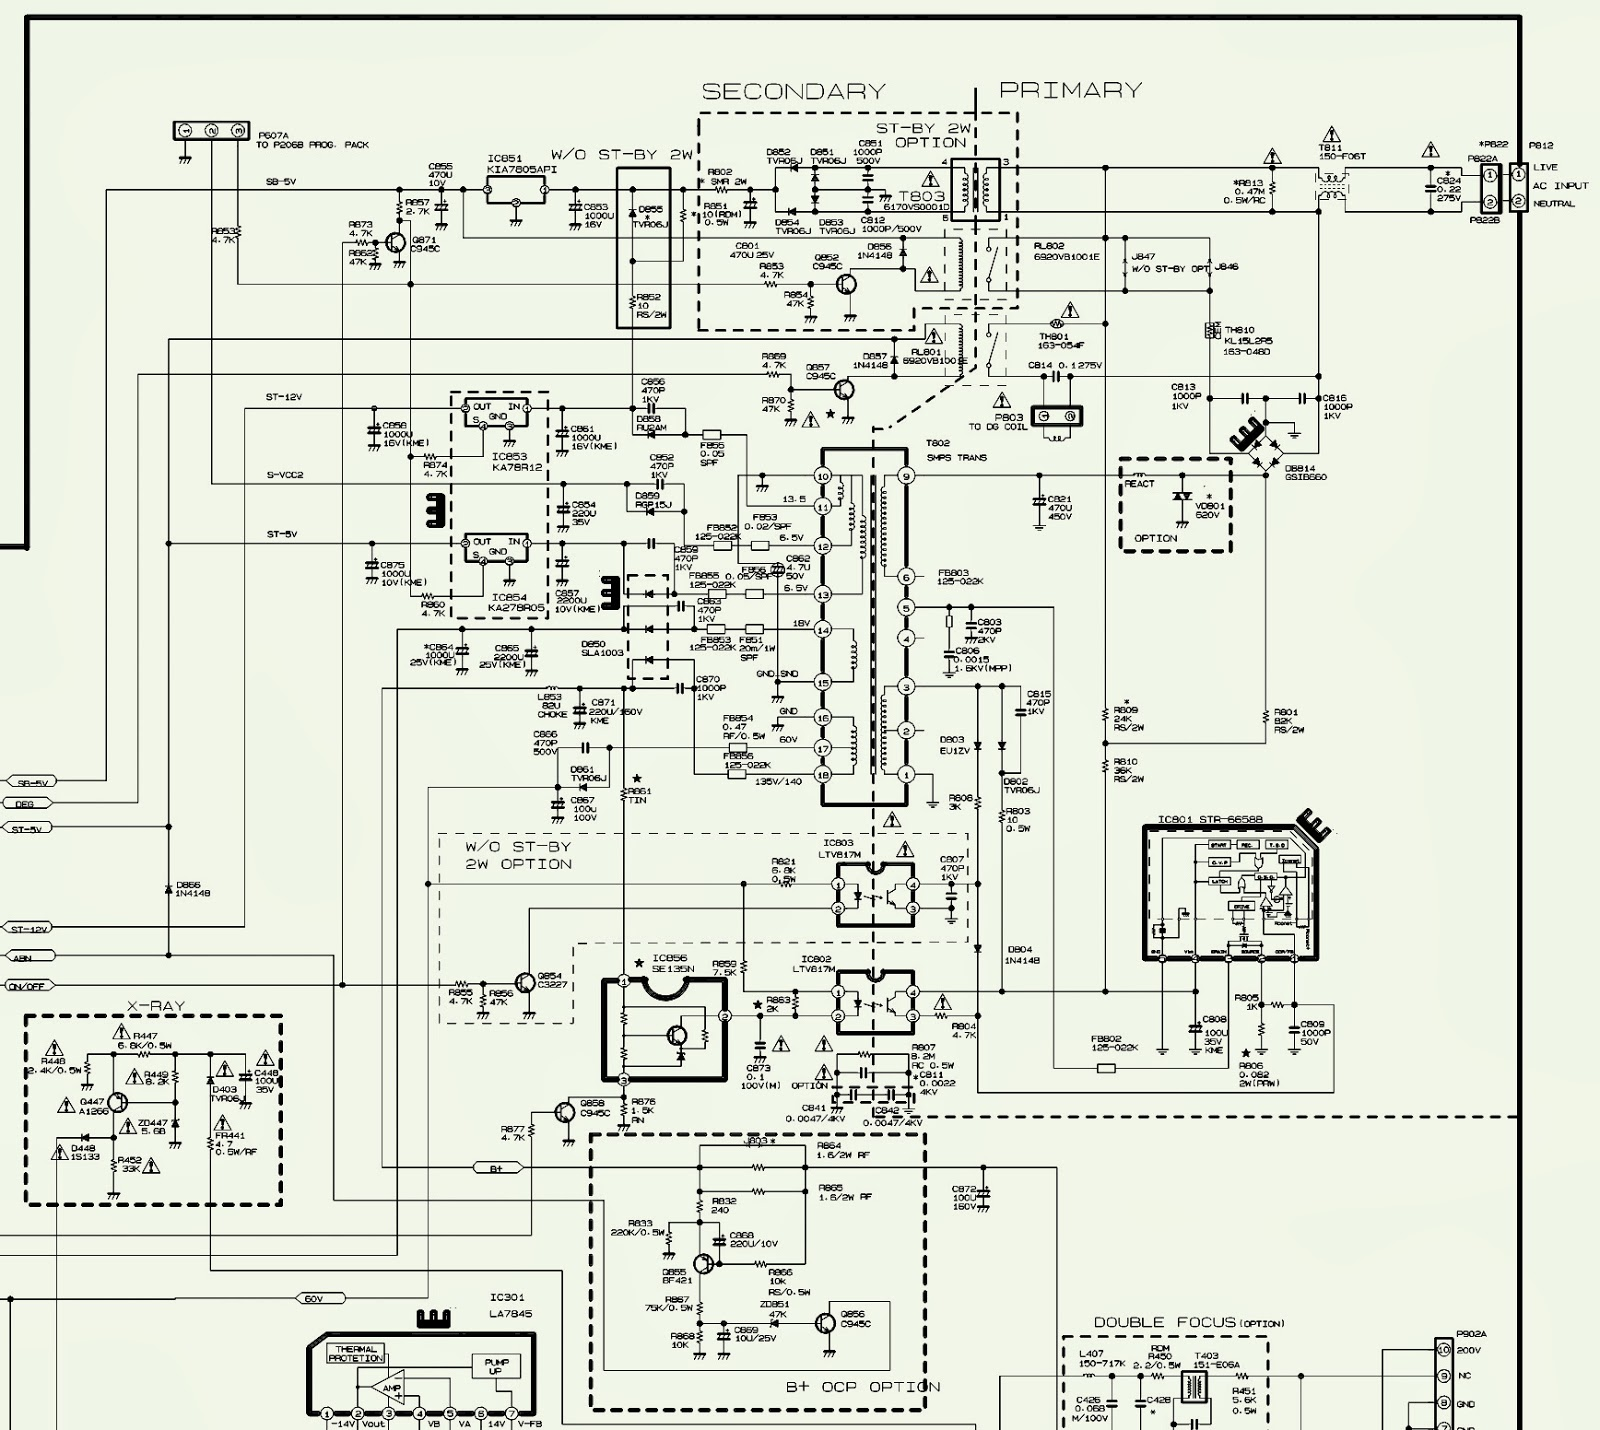 small resolution of samsung tv power supply schematic power supply circuit diagram switch mode power supply circuit diagram also samsung microwave wiring